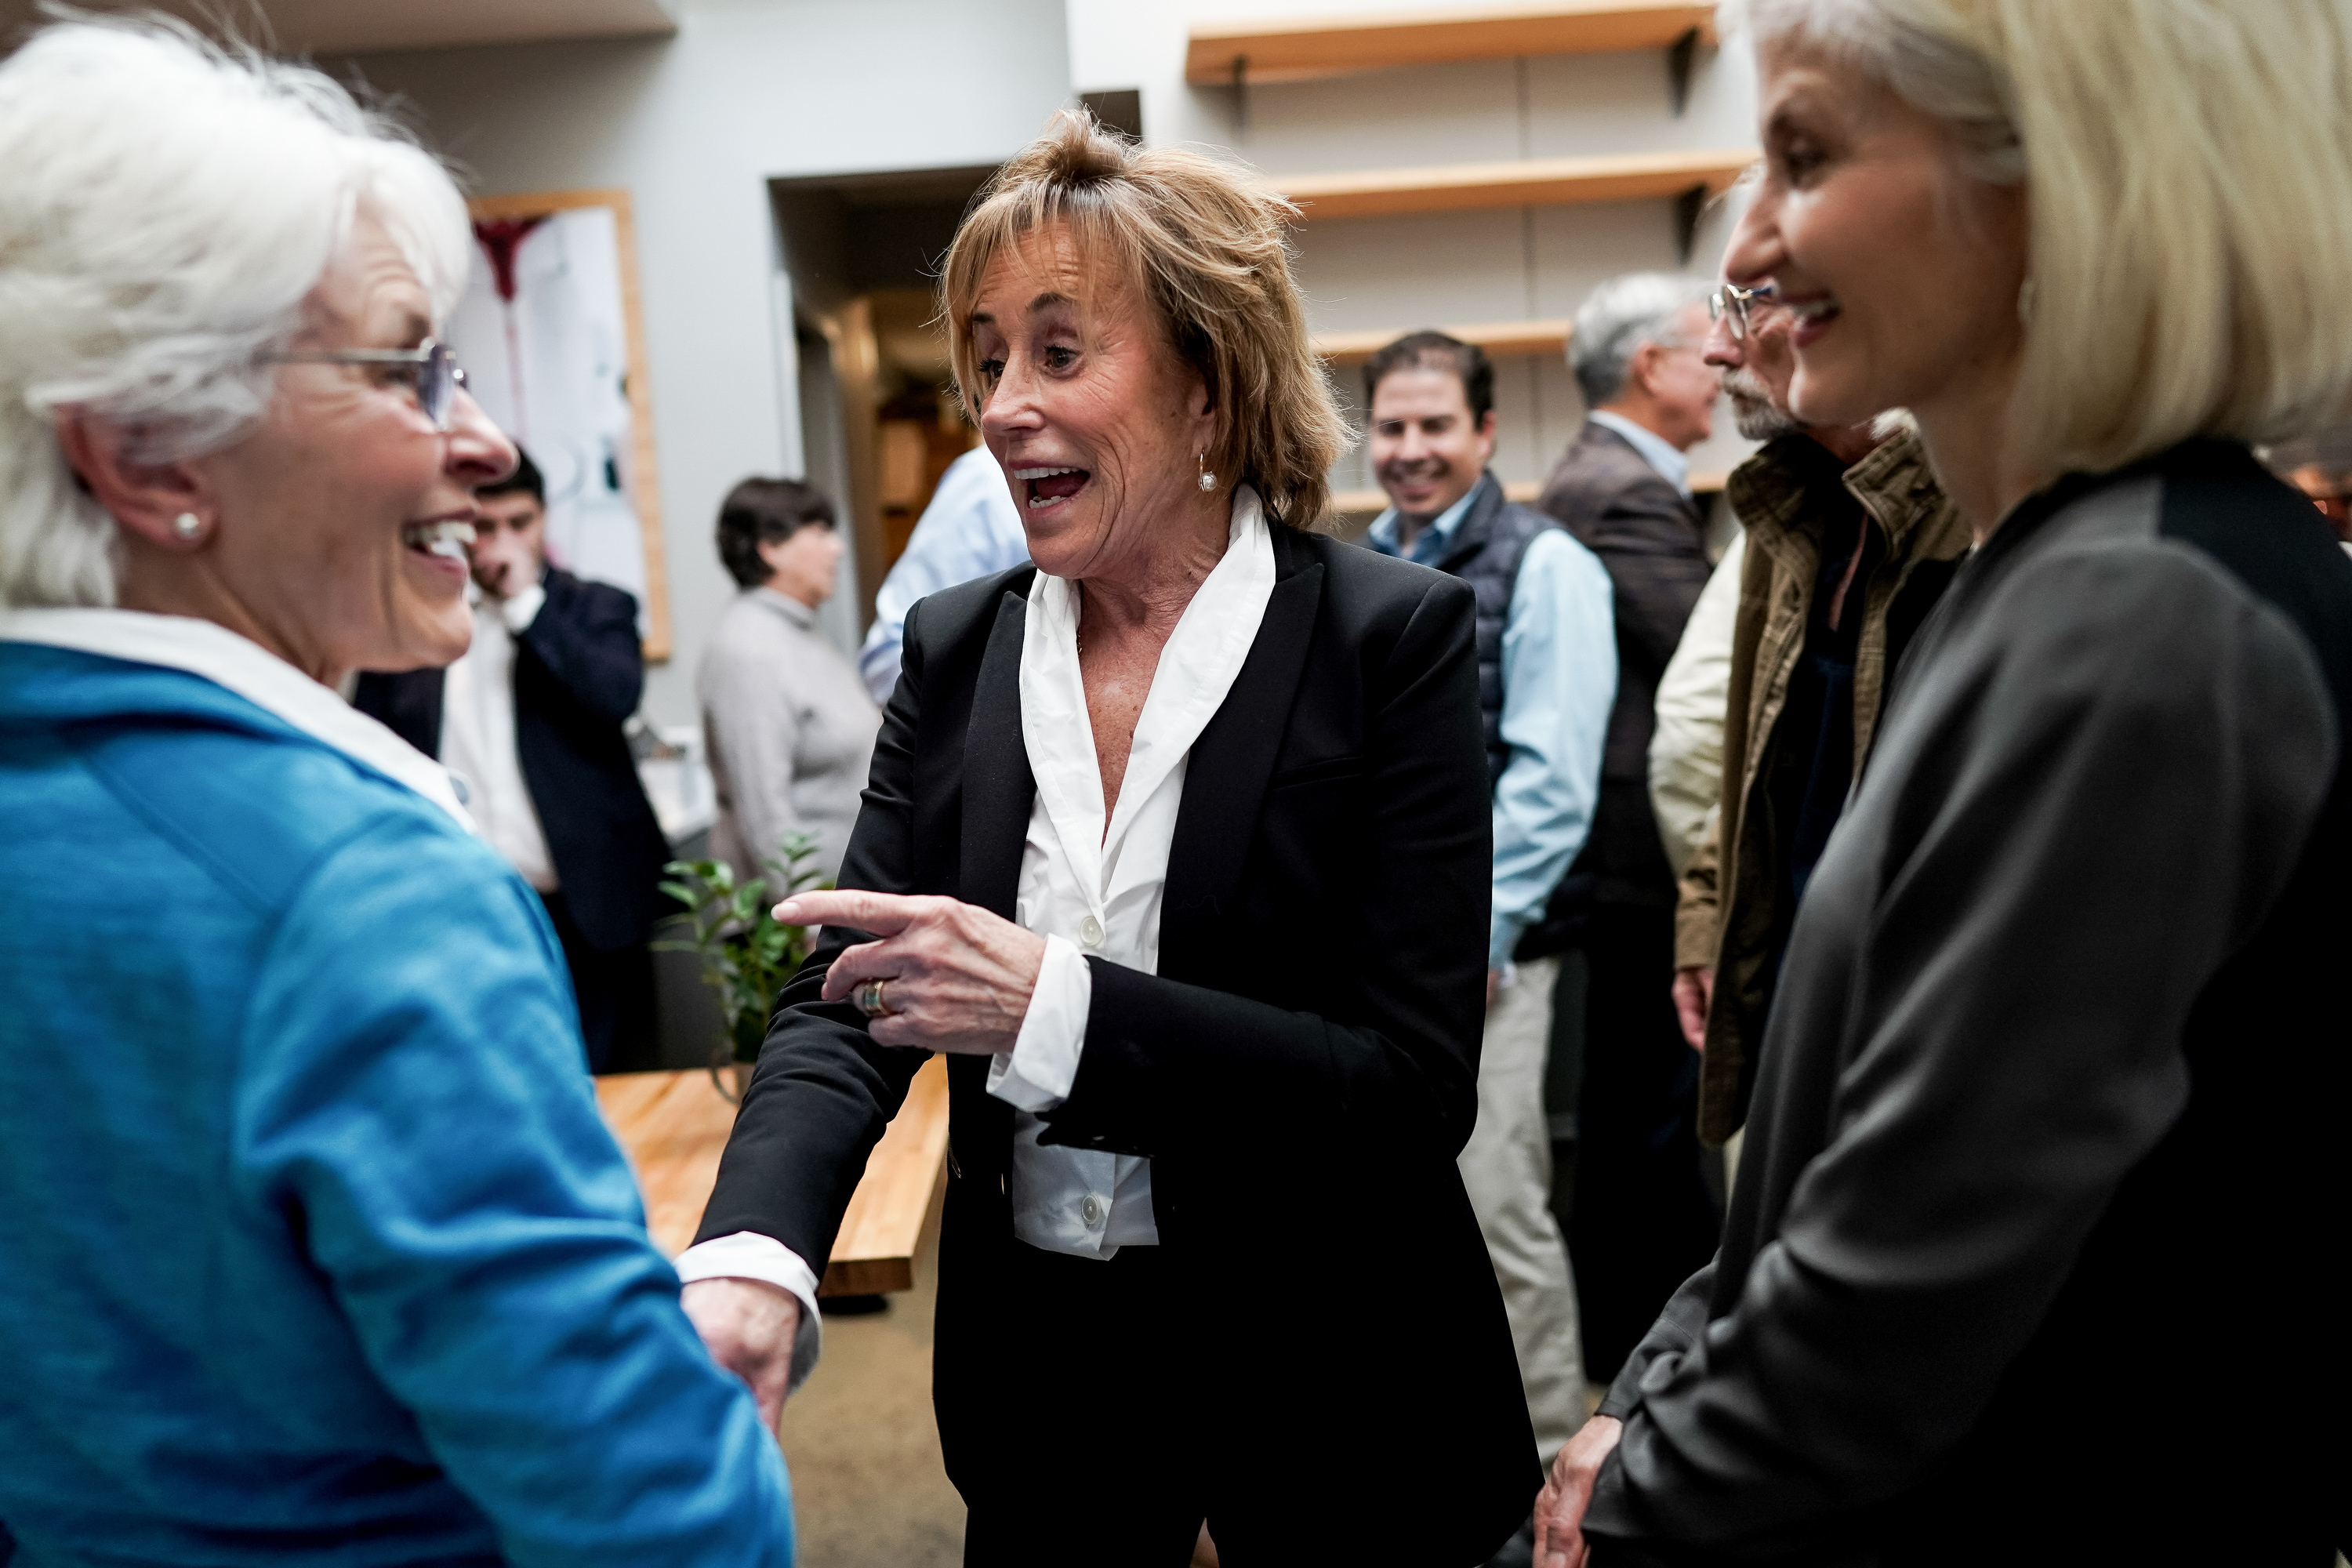 Valerie Biden Owens, center, chats with Jill Lesh, left, and Cynthia Owens, right, as Biden Owens campaigns for her brother, former vice president and Democratic presidential contender Joe Biden, at Pulp Lifestyle Kitchen in Salt Lake City on Saturday, Nov. 9, 2019.